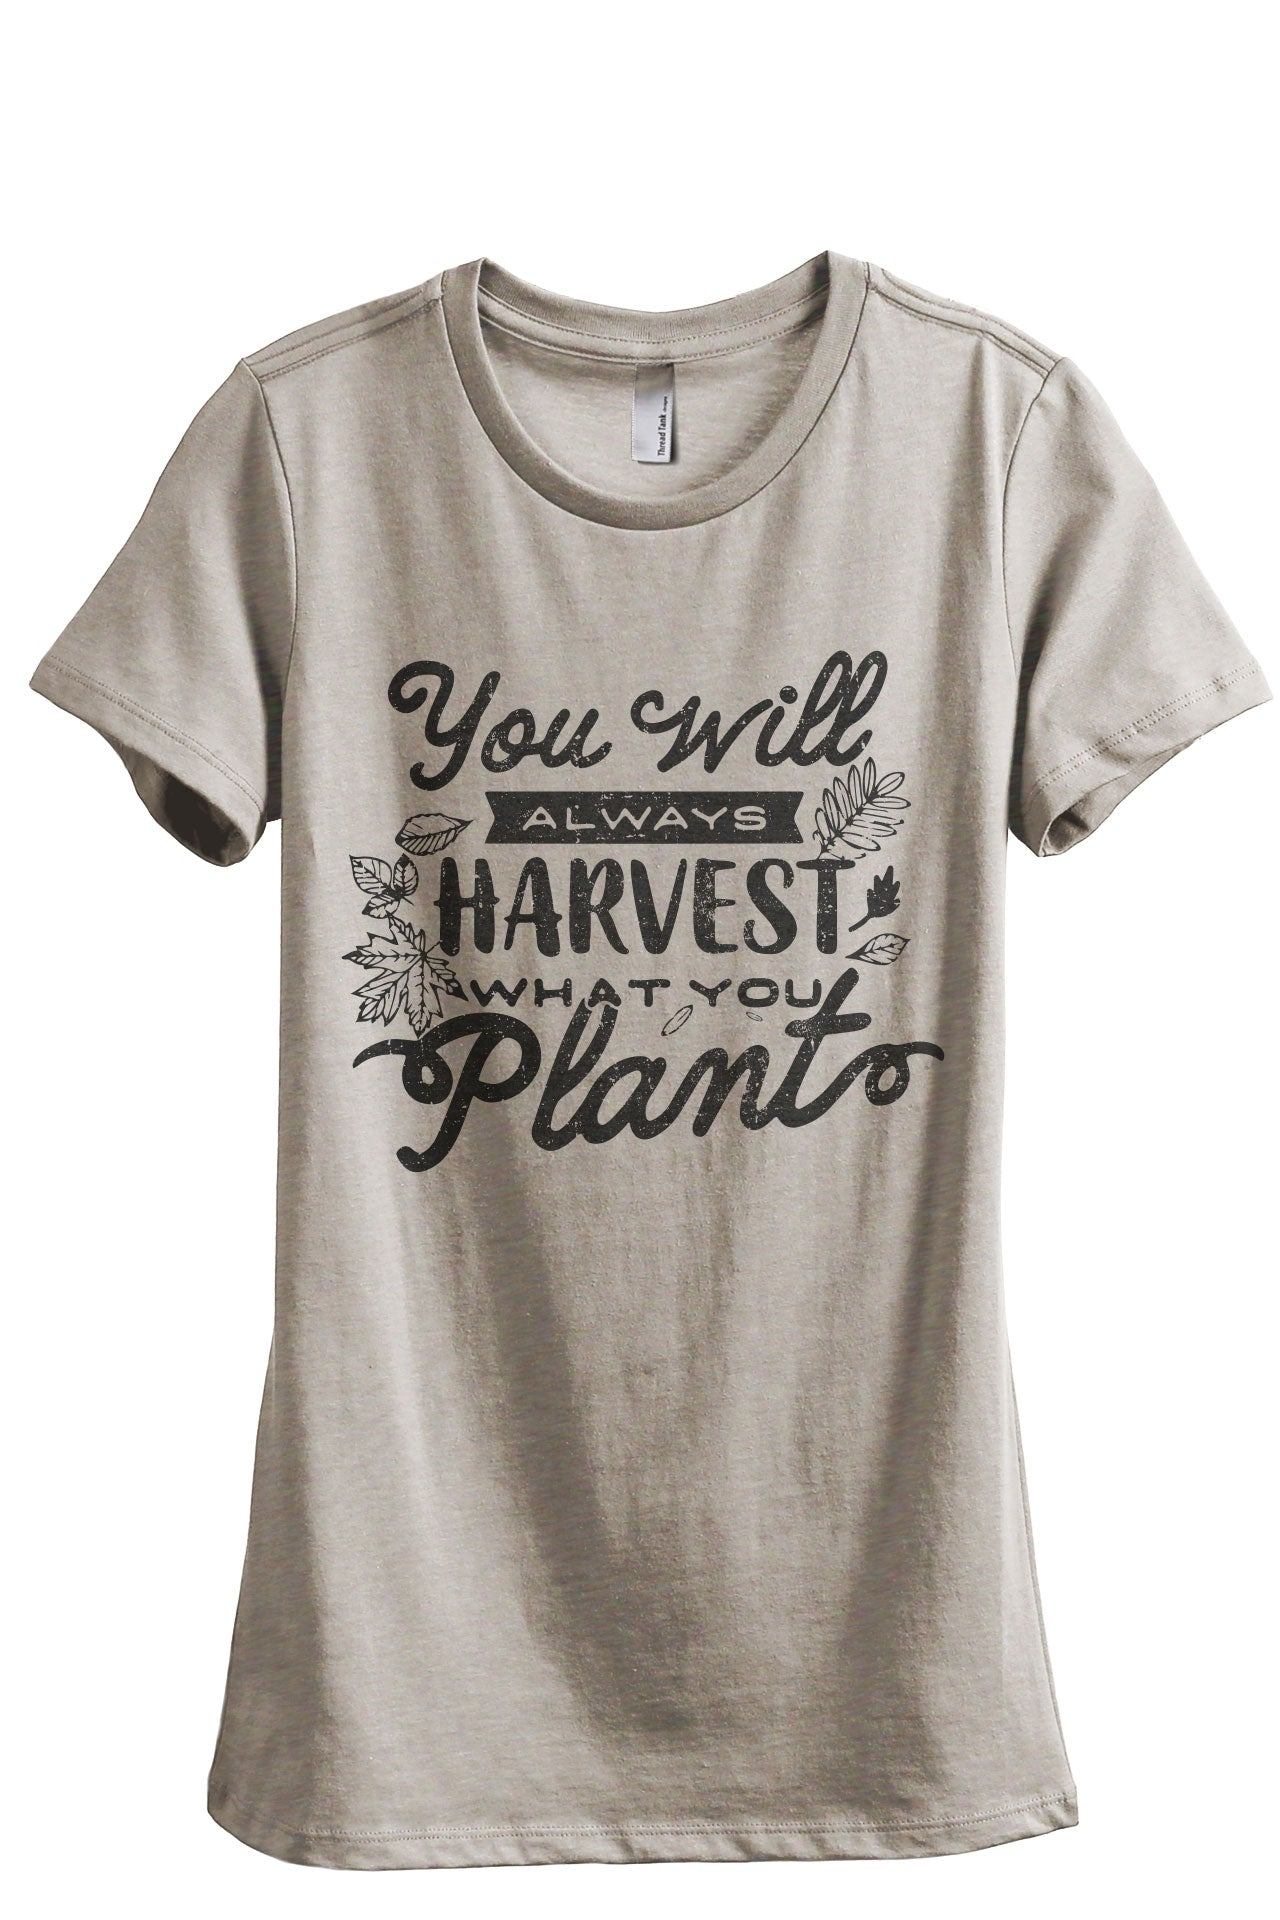 You Will Always Harvest What You Plant Women's Relaxed Crewneck T-Shirt Top Tee Heather Tan Grey